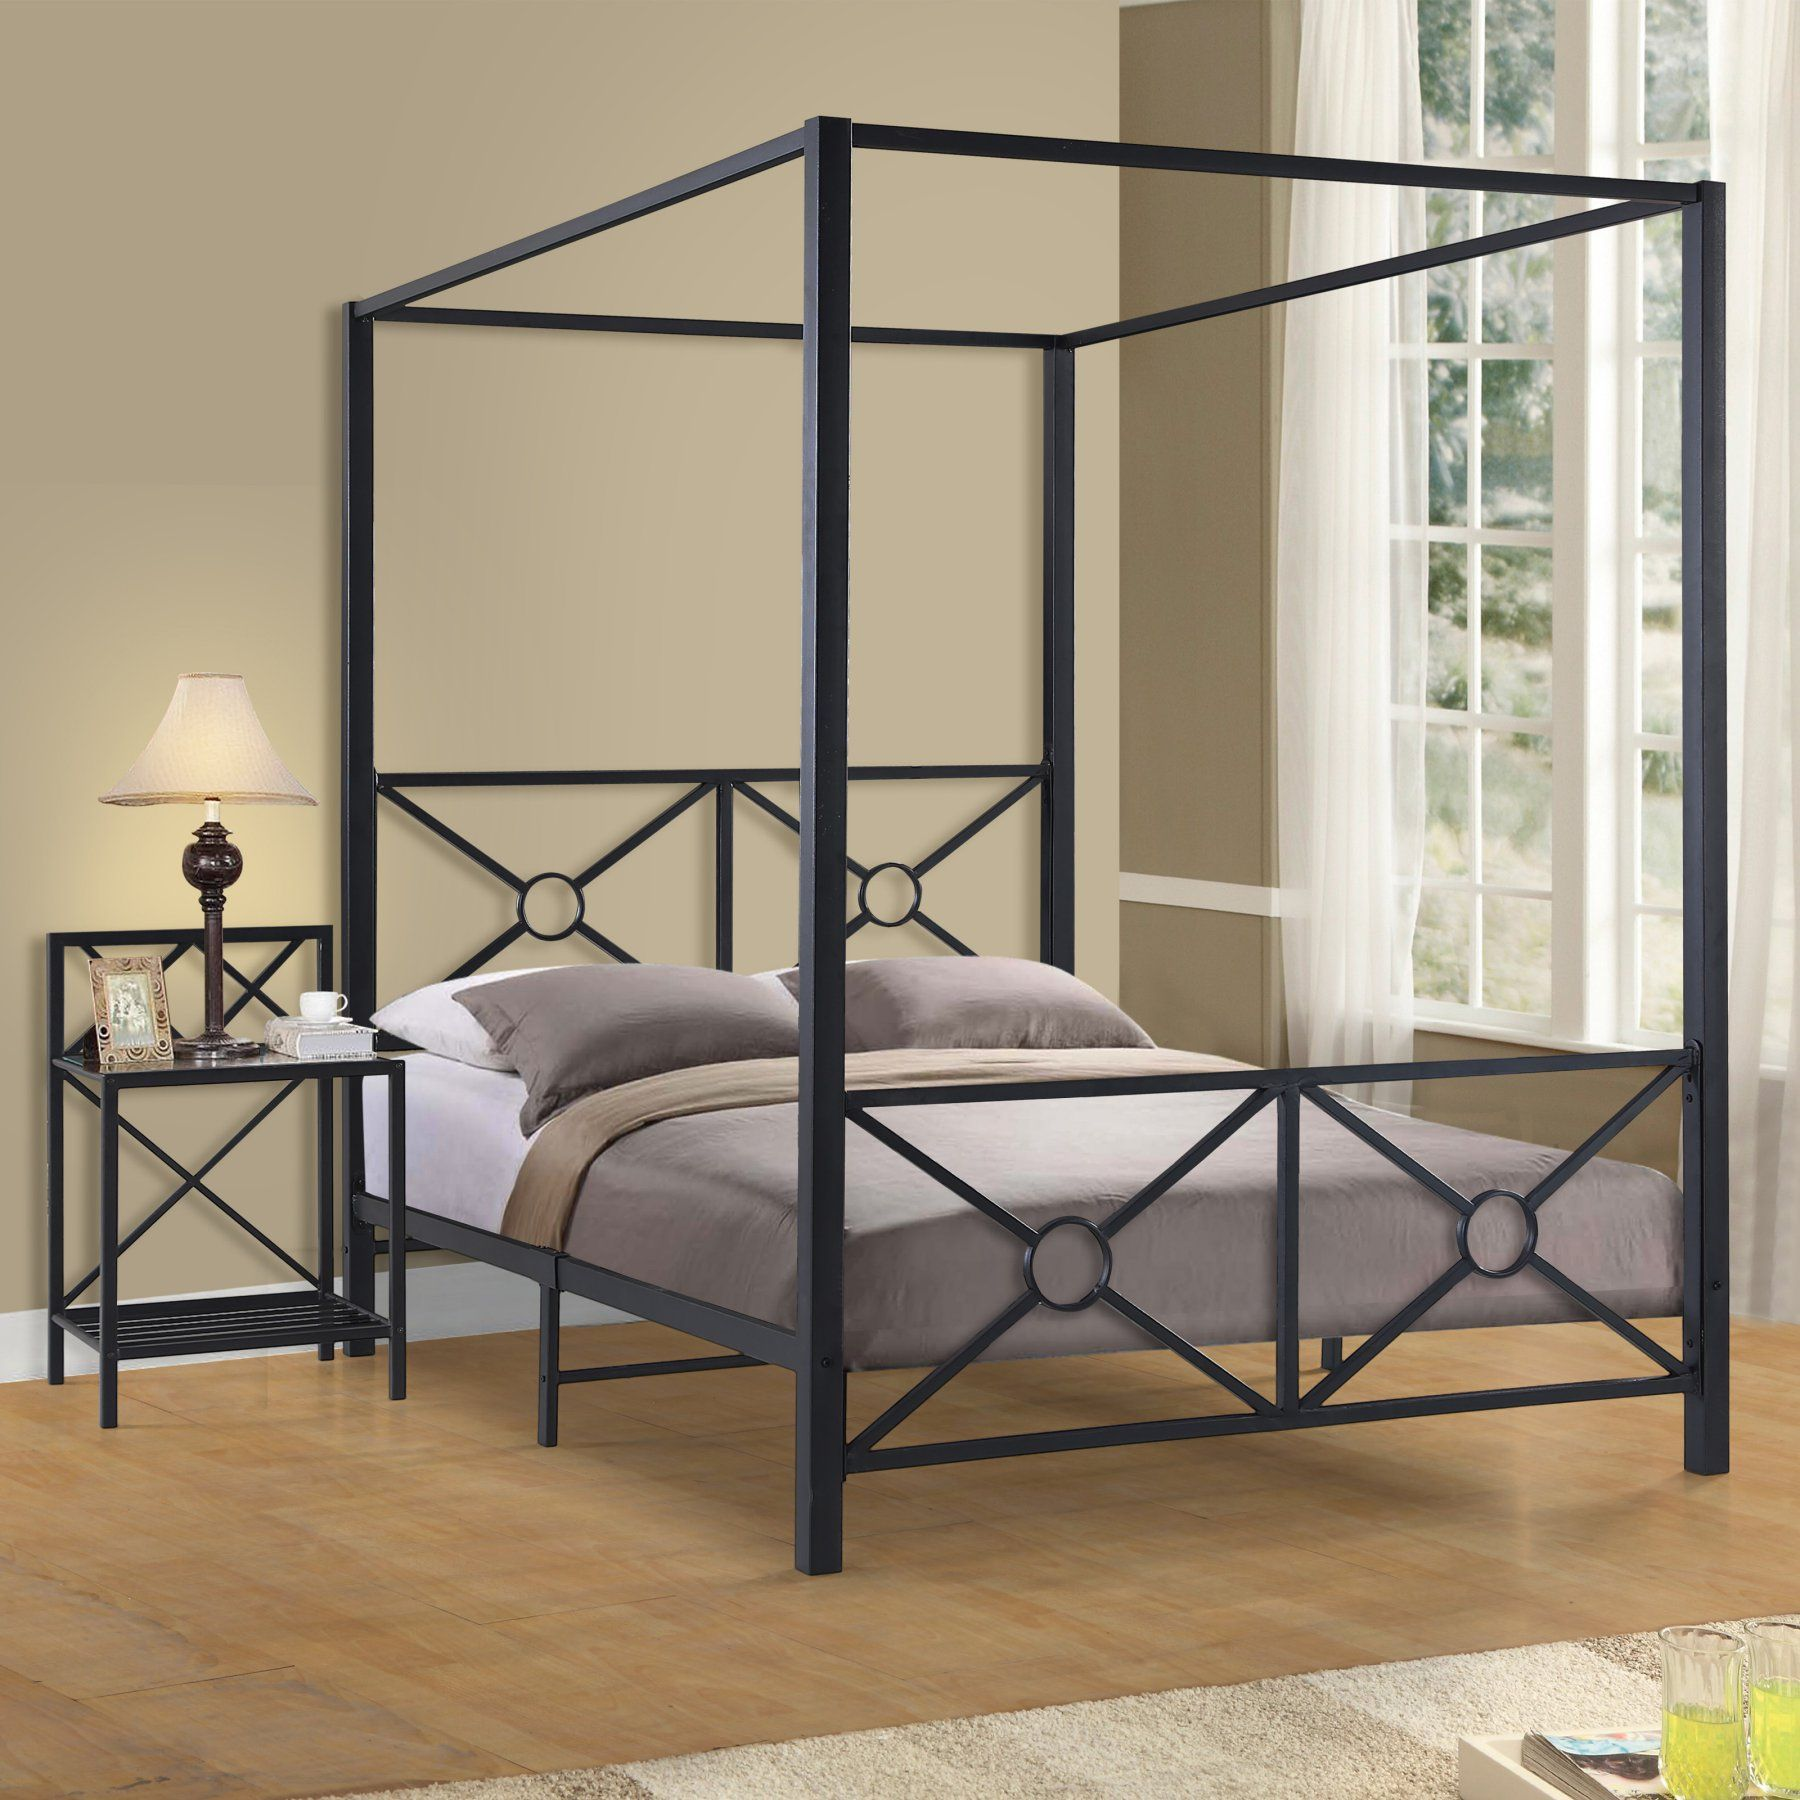 Home source industries marissa metal canopy bed cb100 tb